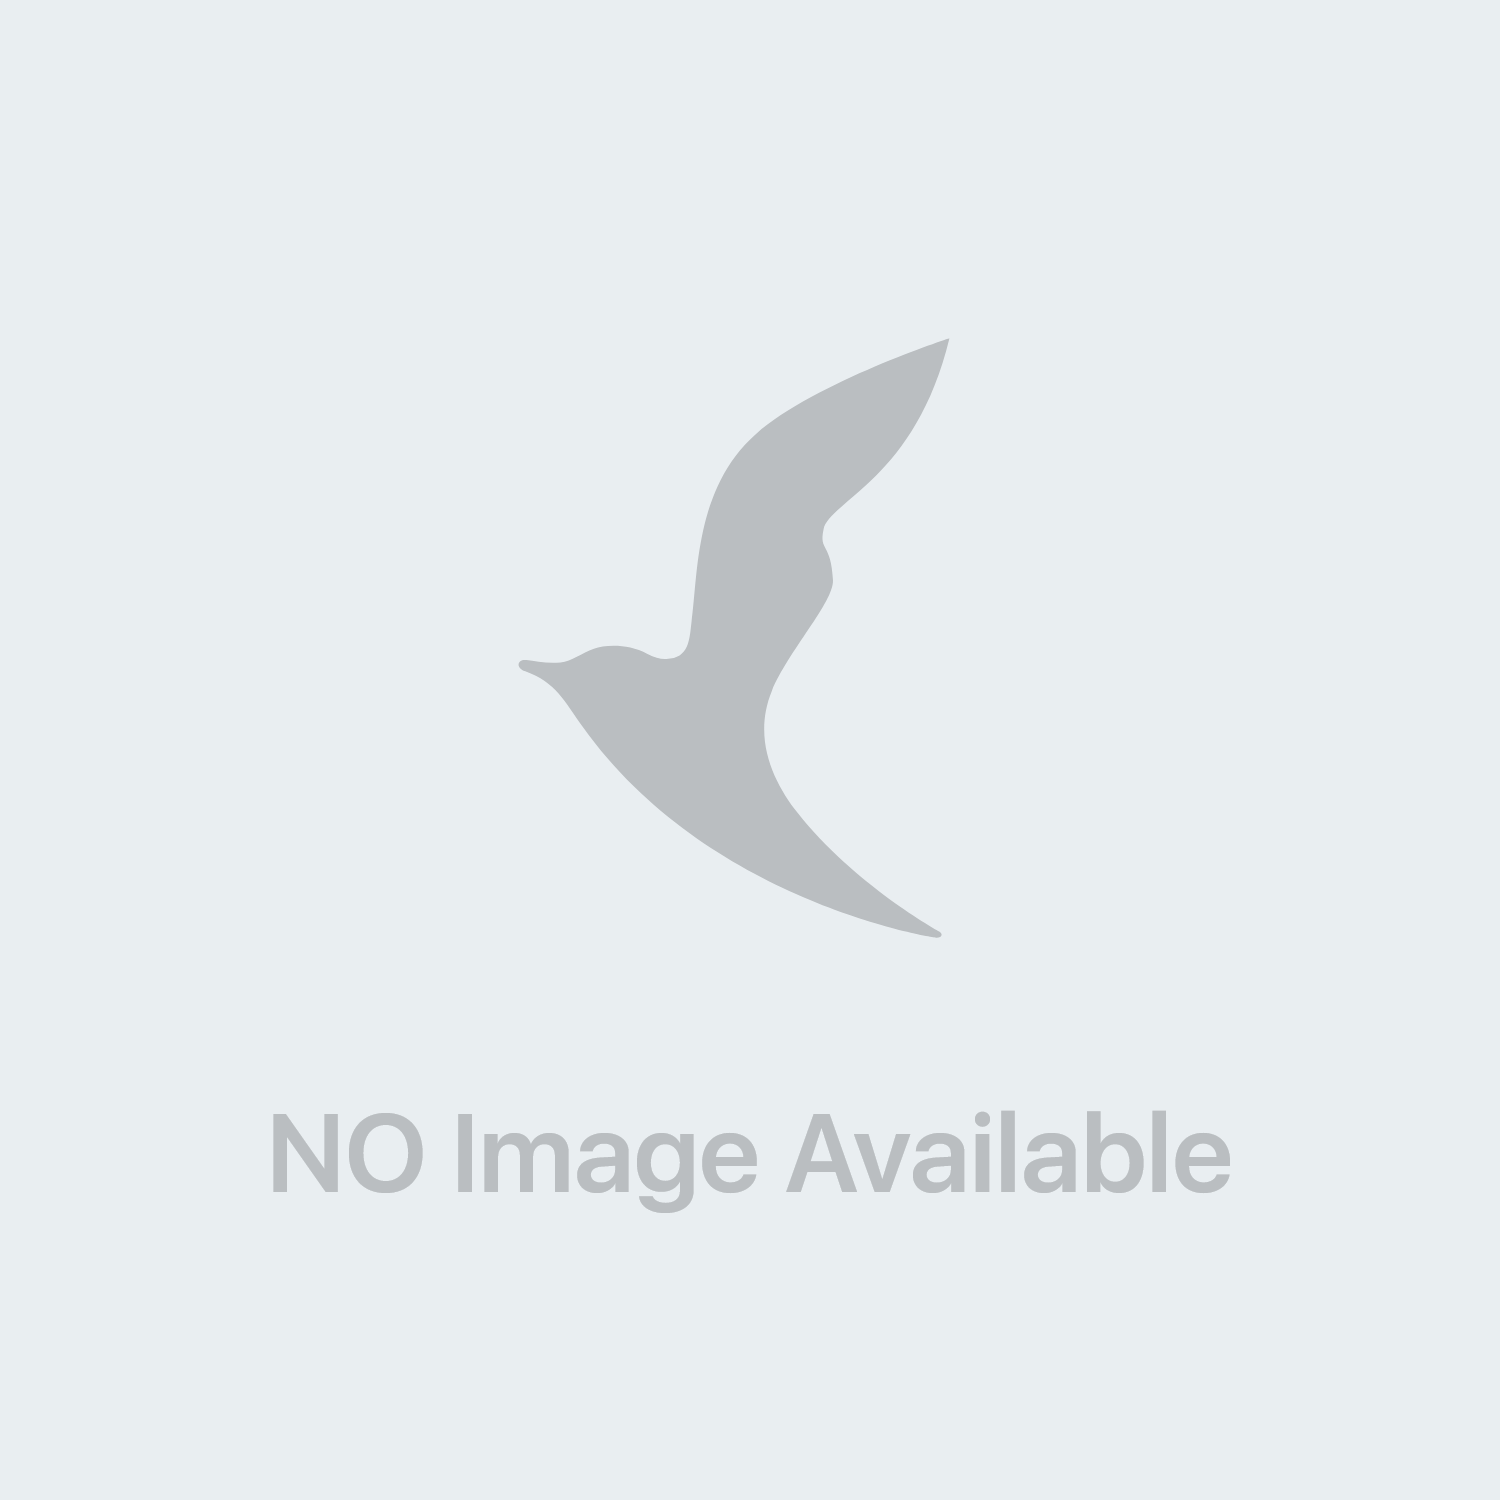 Tronotene Crema 1% Pramocaina Anti-emorroidi Tubo 30g Con Applicatore